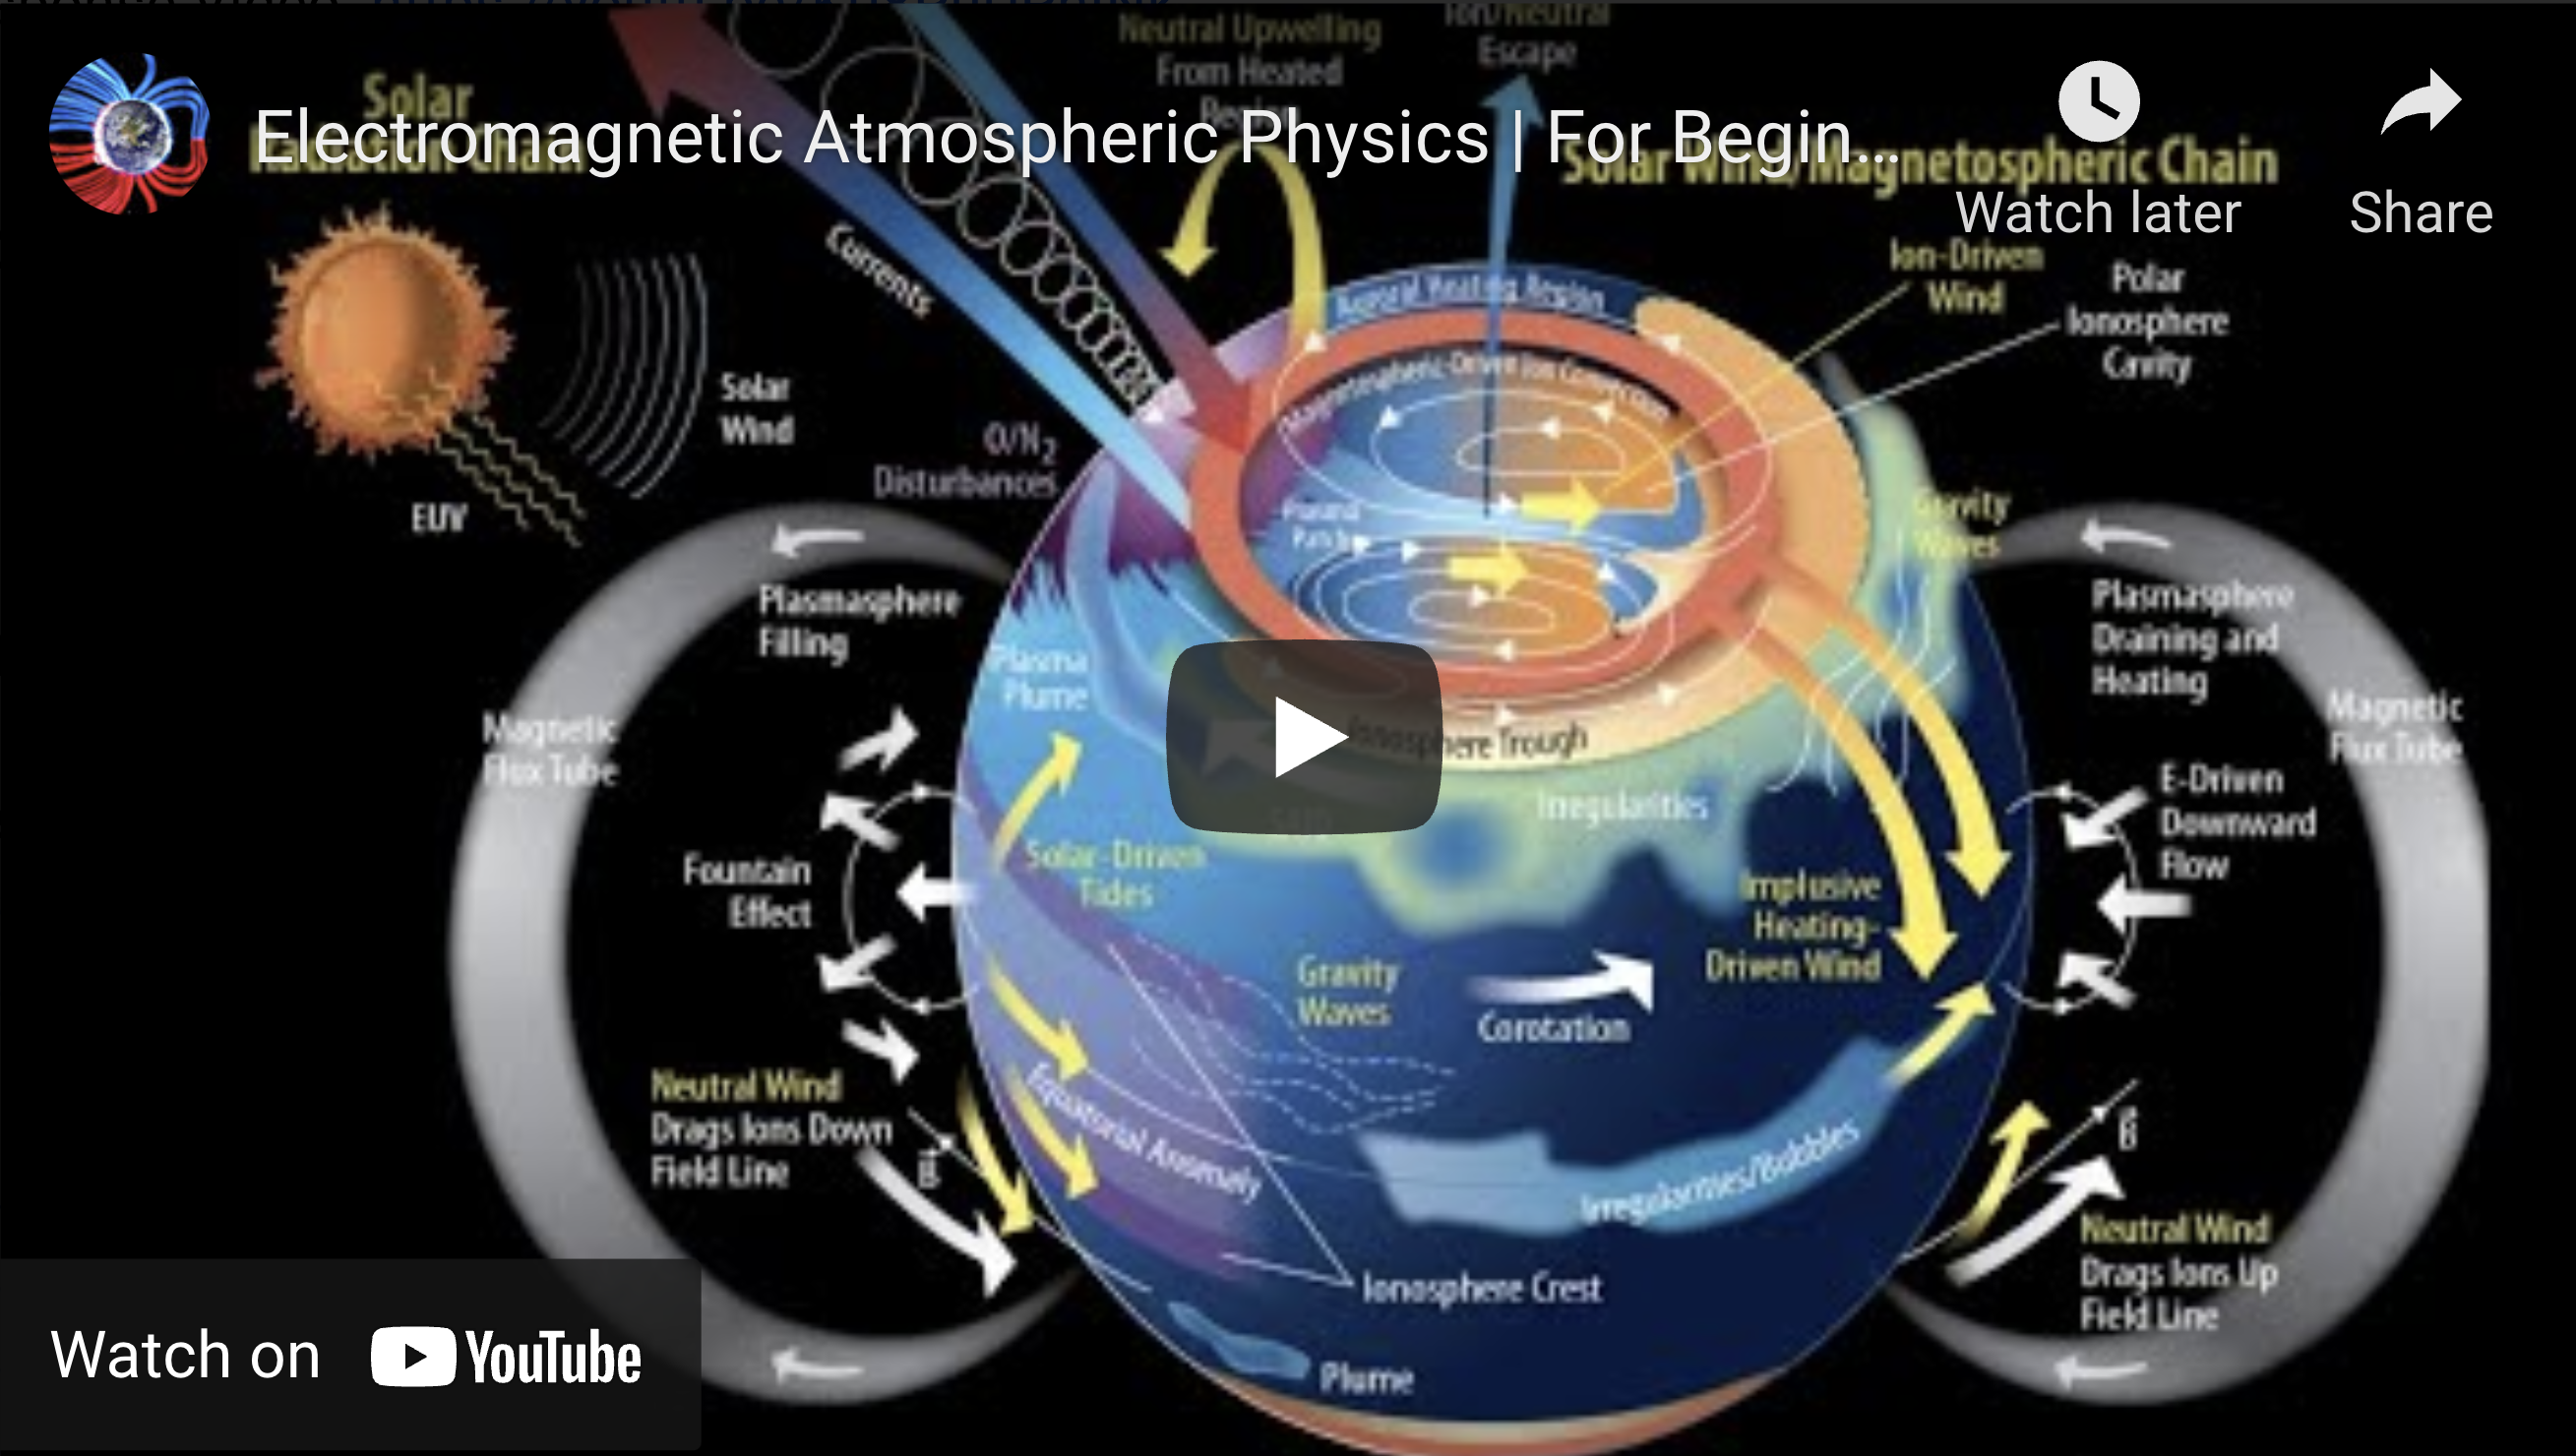 Suspicious Observers Post Electromagnetic Atmospheric Physics For Beginners NASA EXZM Zack Mount August 30th 2021